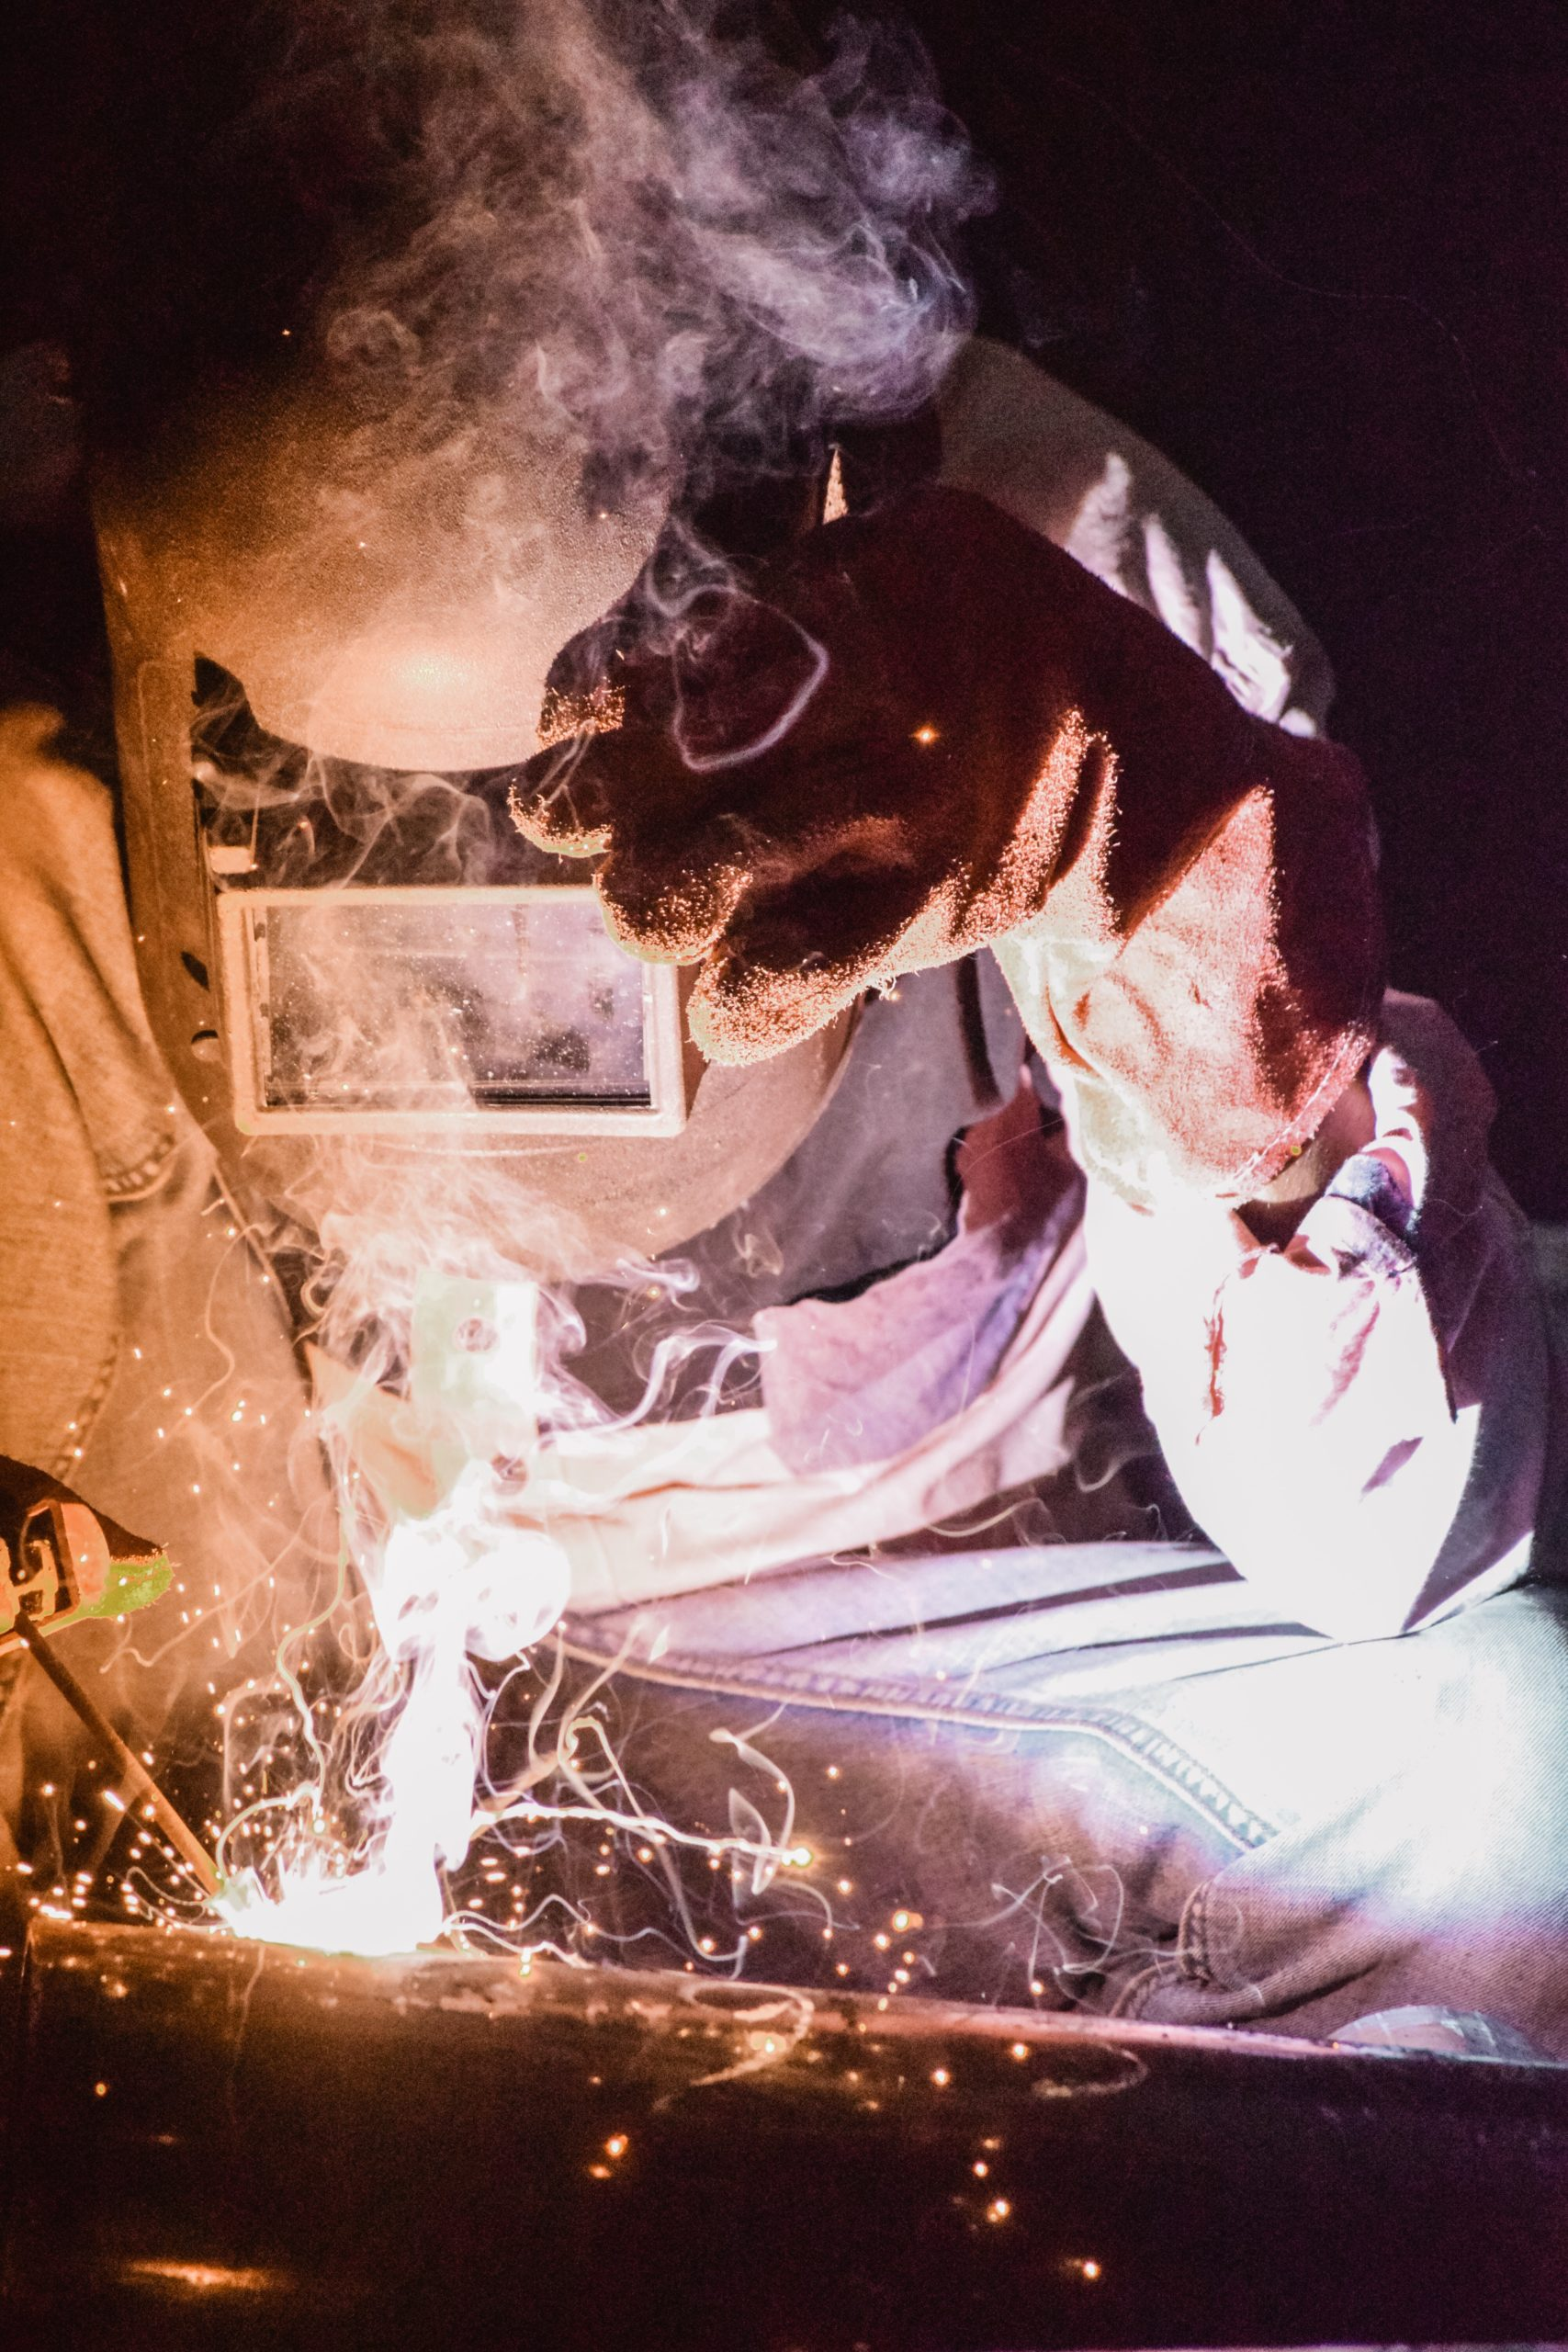 Welding Supplies - Essential Tips For Buying The Best Ones